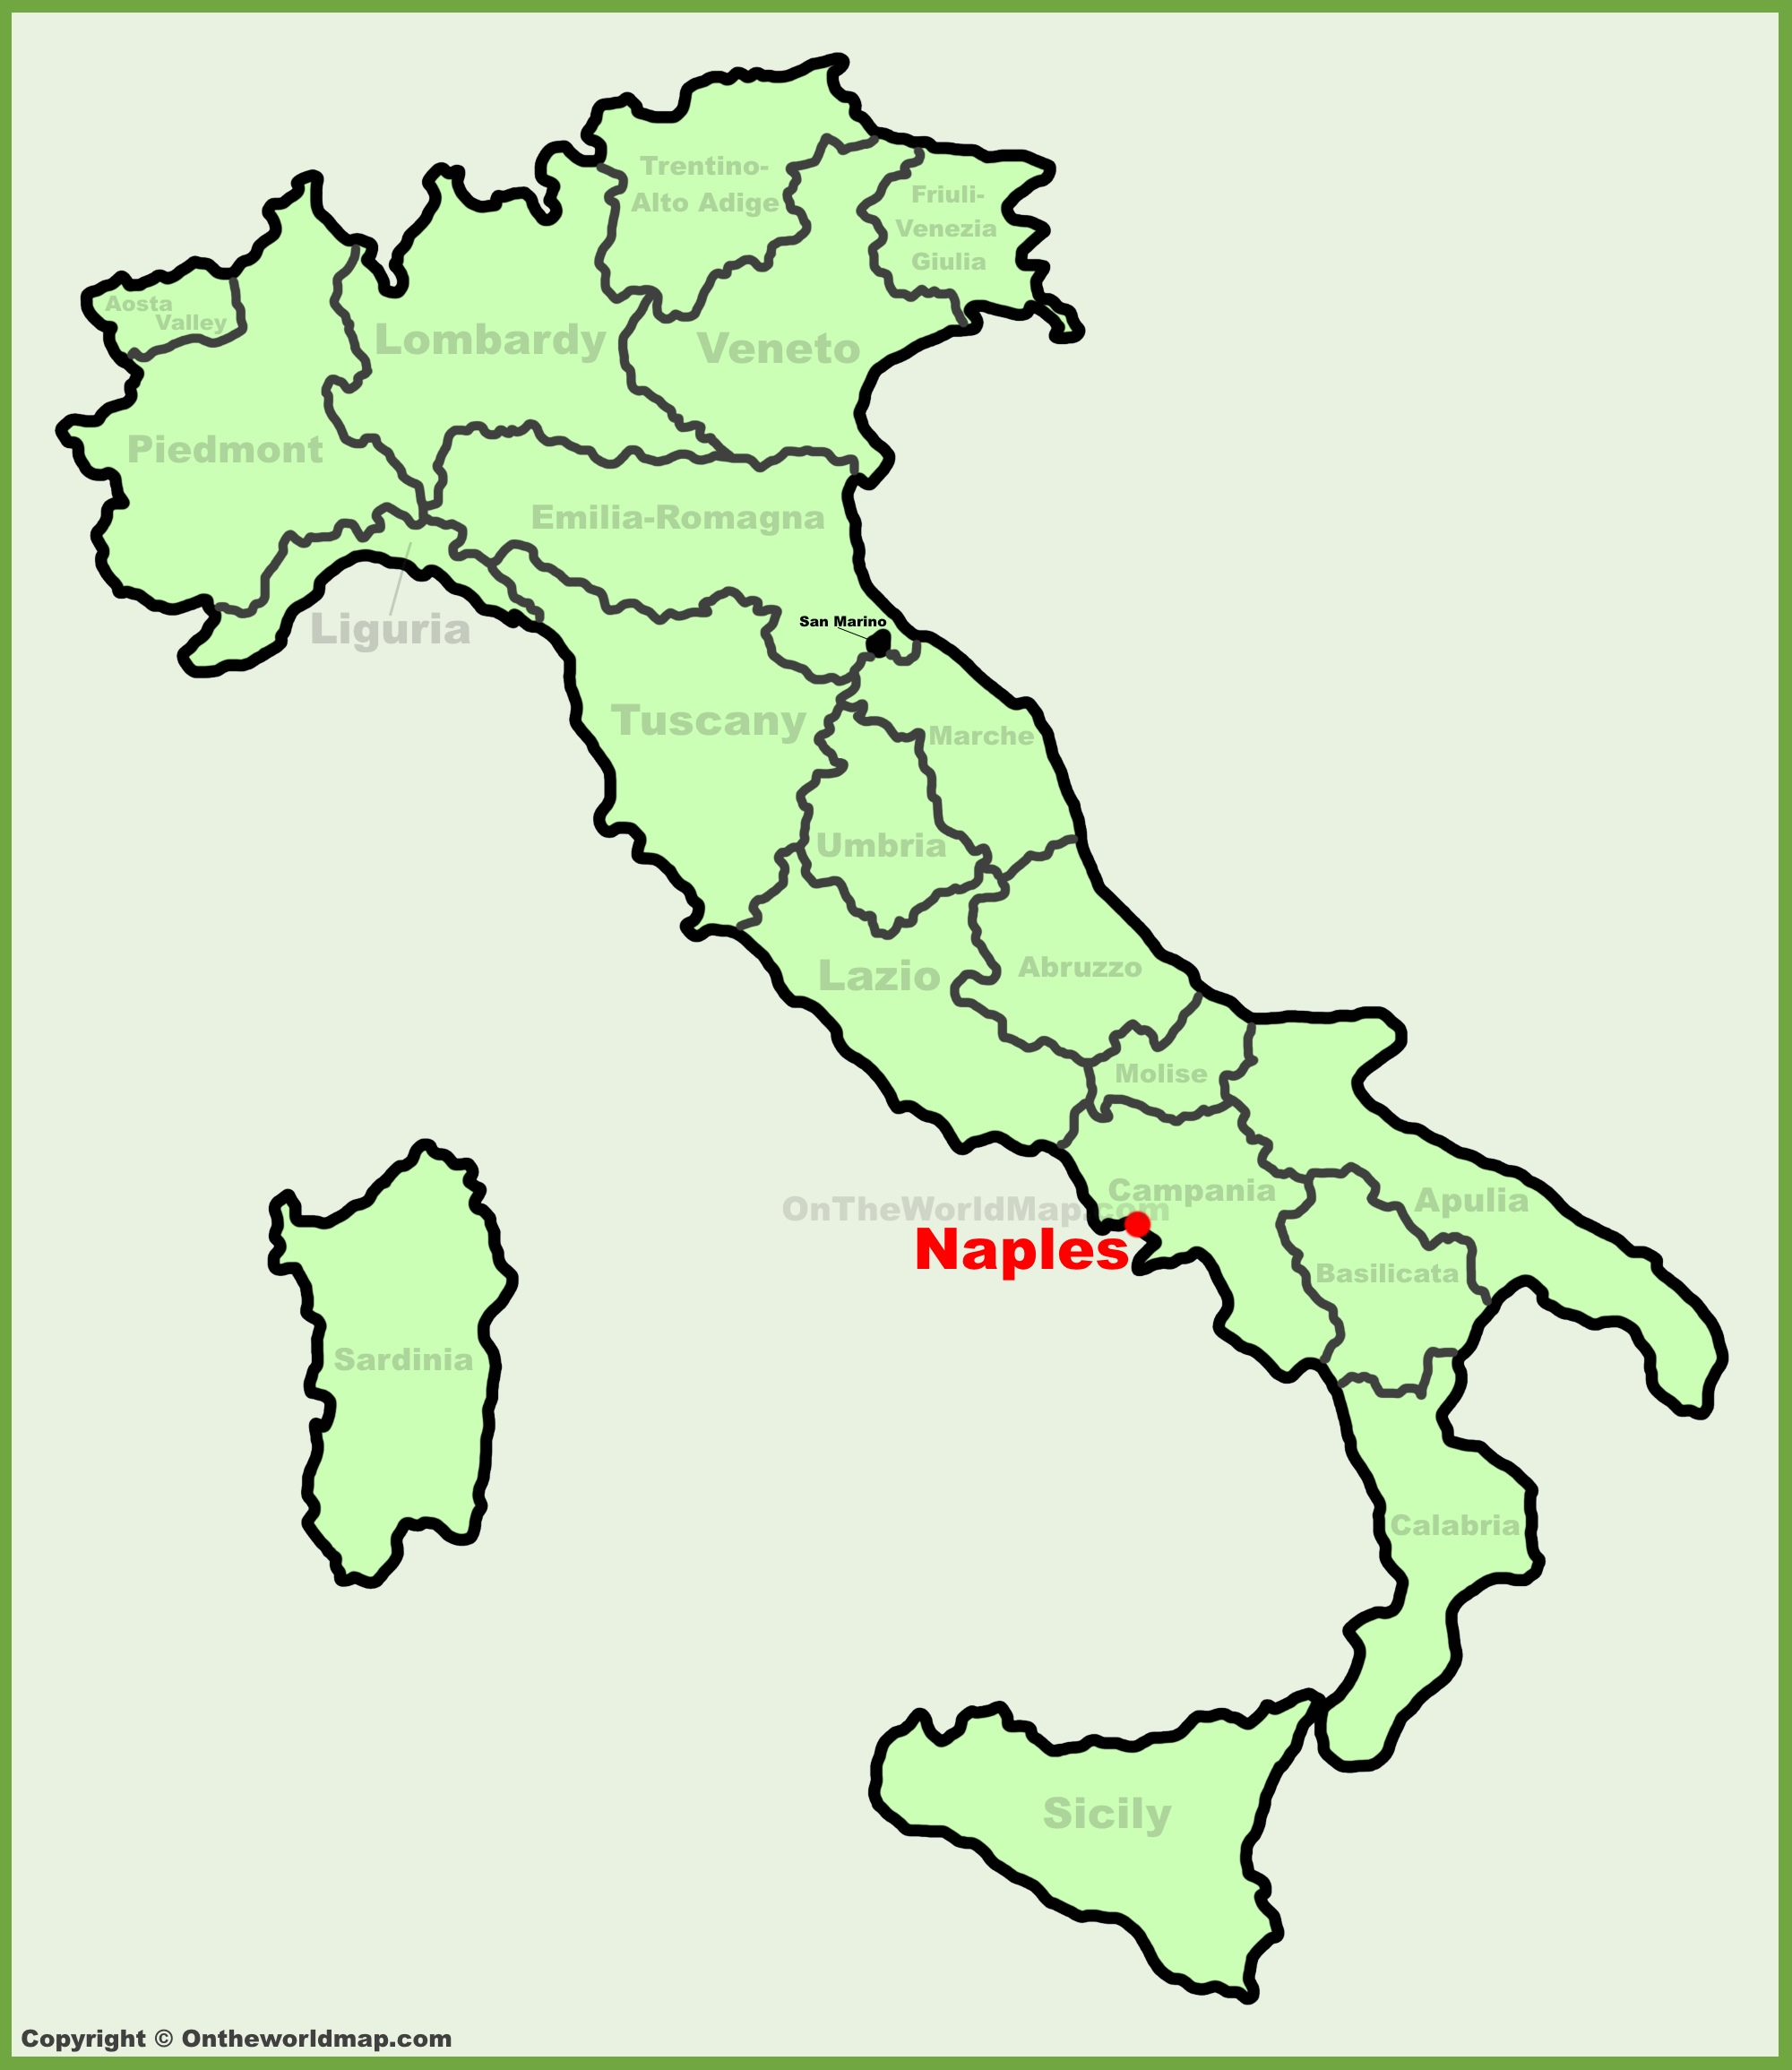 Naples location on the Italy map